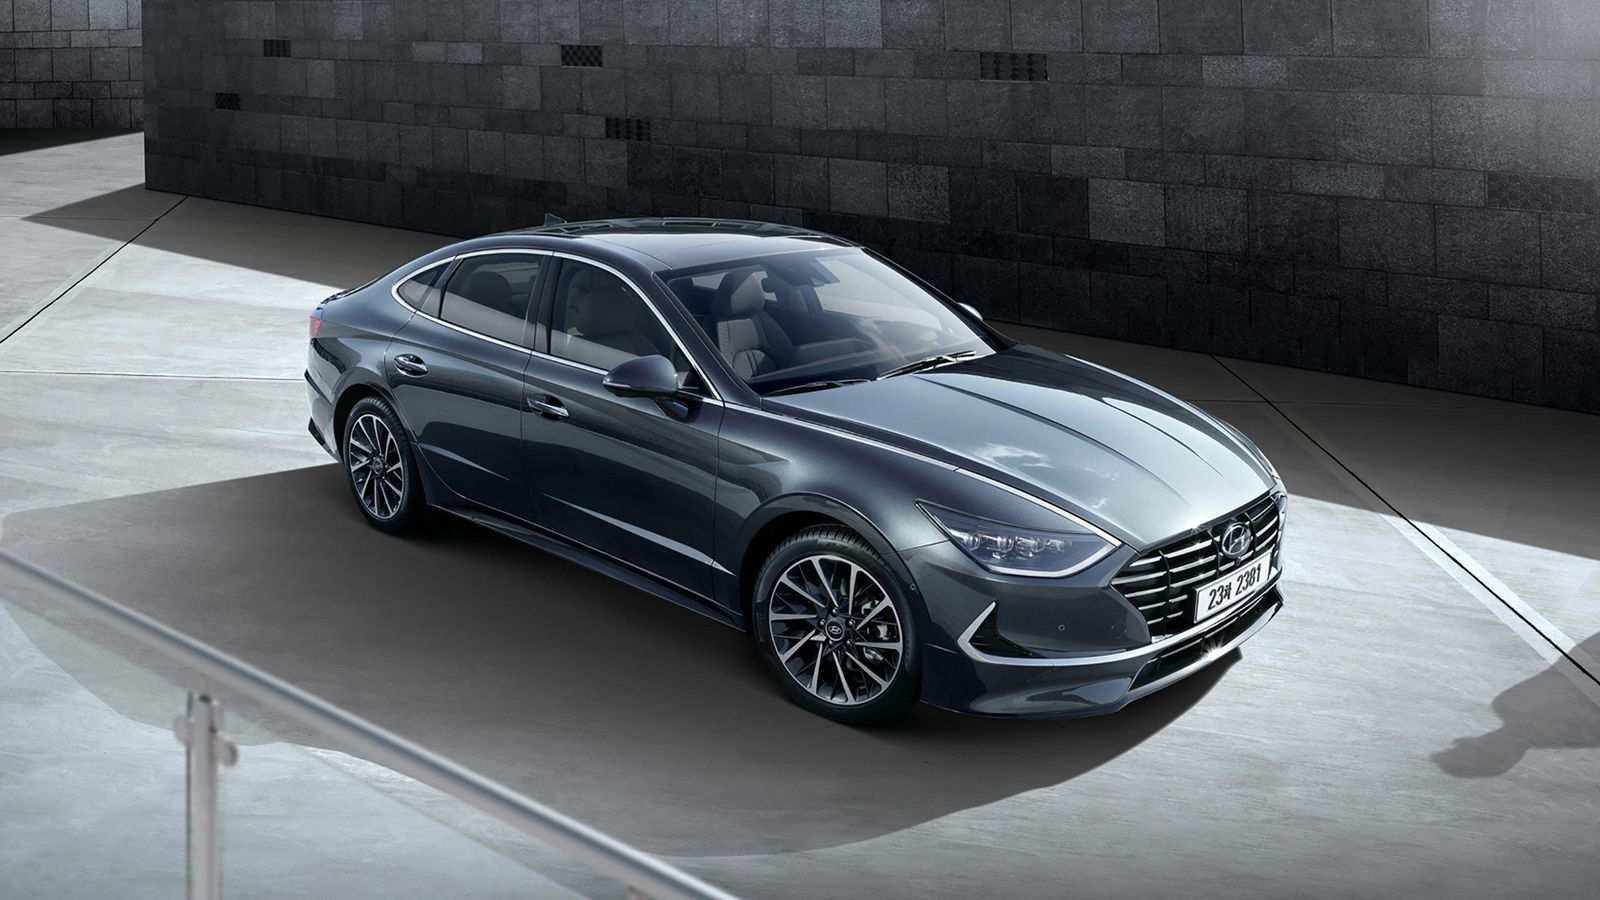 49 All New New York Auto Show 2020 Hyundai Review And Release Date